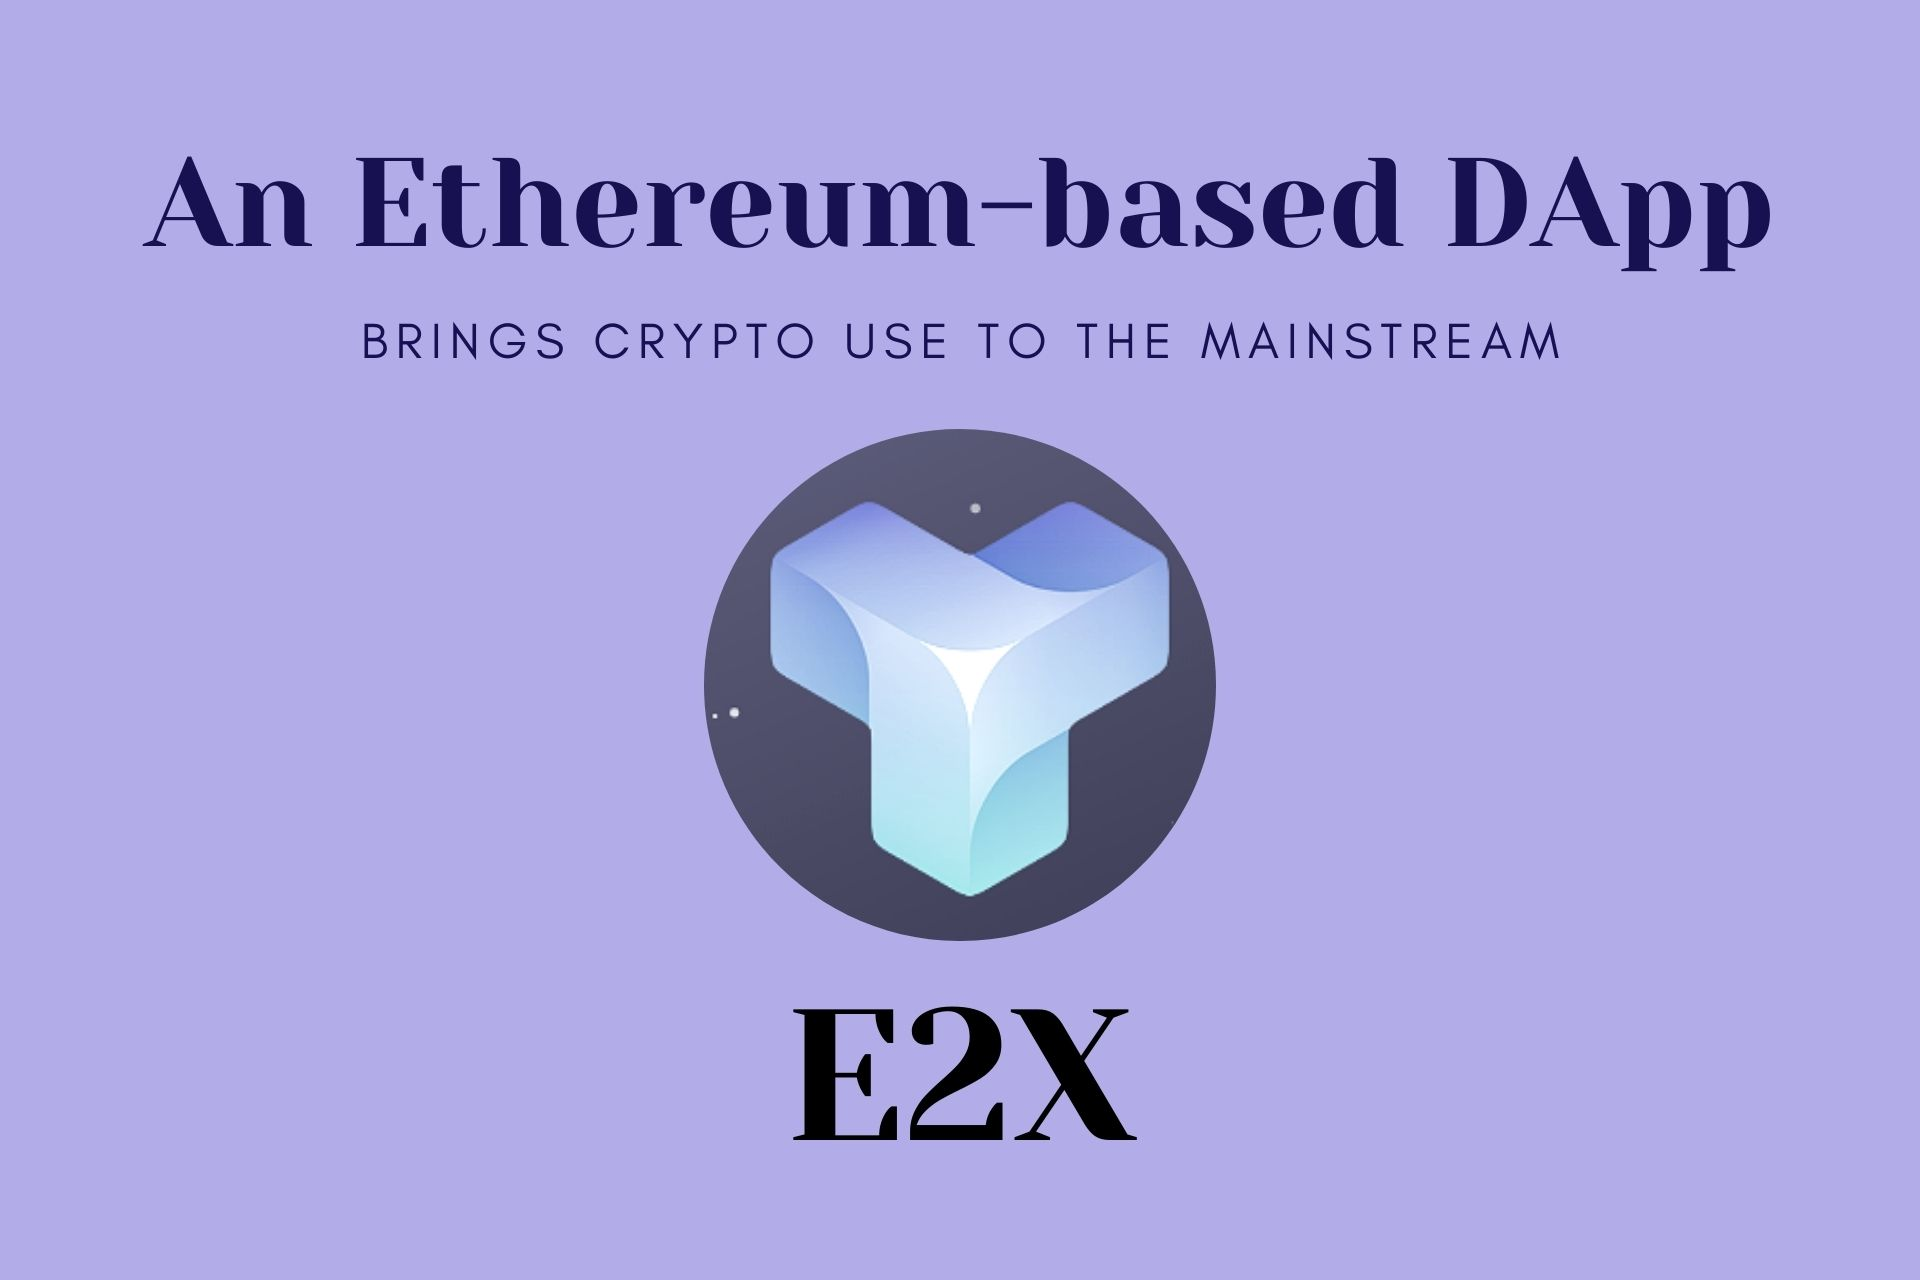 E2X – An Ethereum-based DApp to Bring Crypto Use to The Mainstream and Earn Staking Rewards